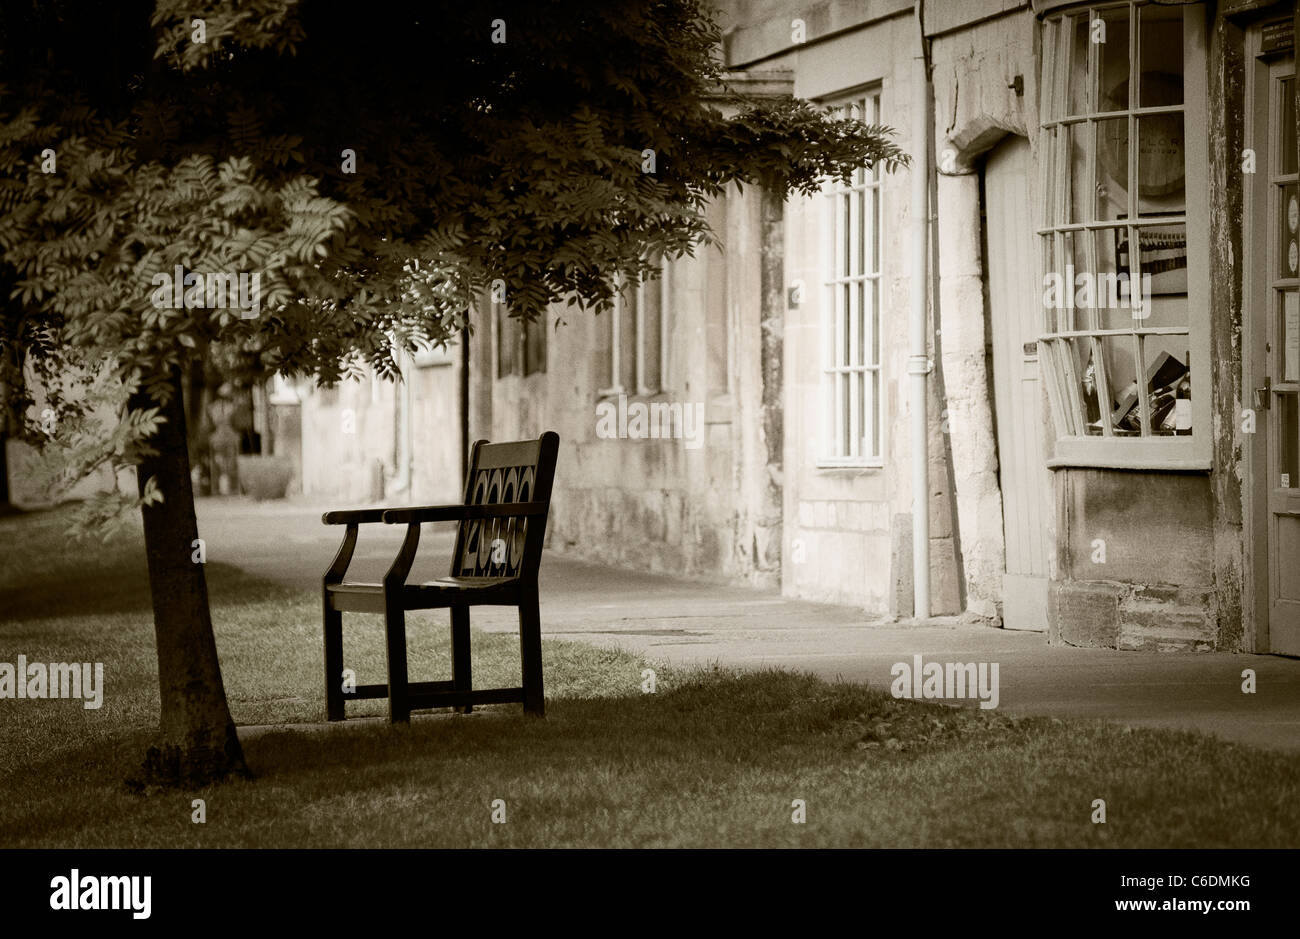 A dreamy image of an old English street scene featuring an old fashioned shop and a bench shot in Chipping Camden Stock Photo